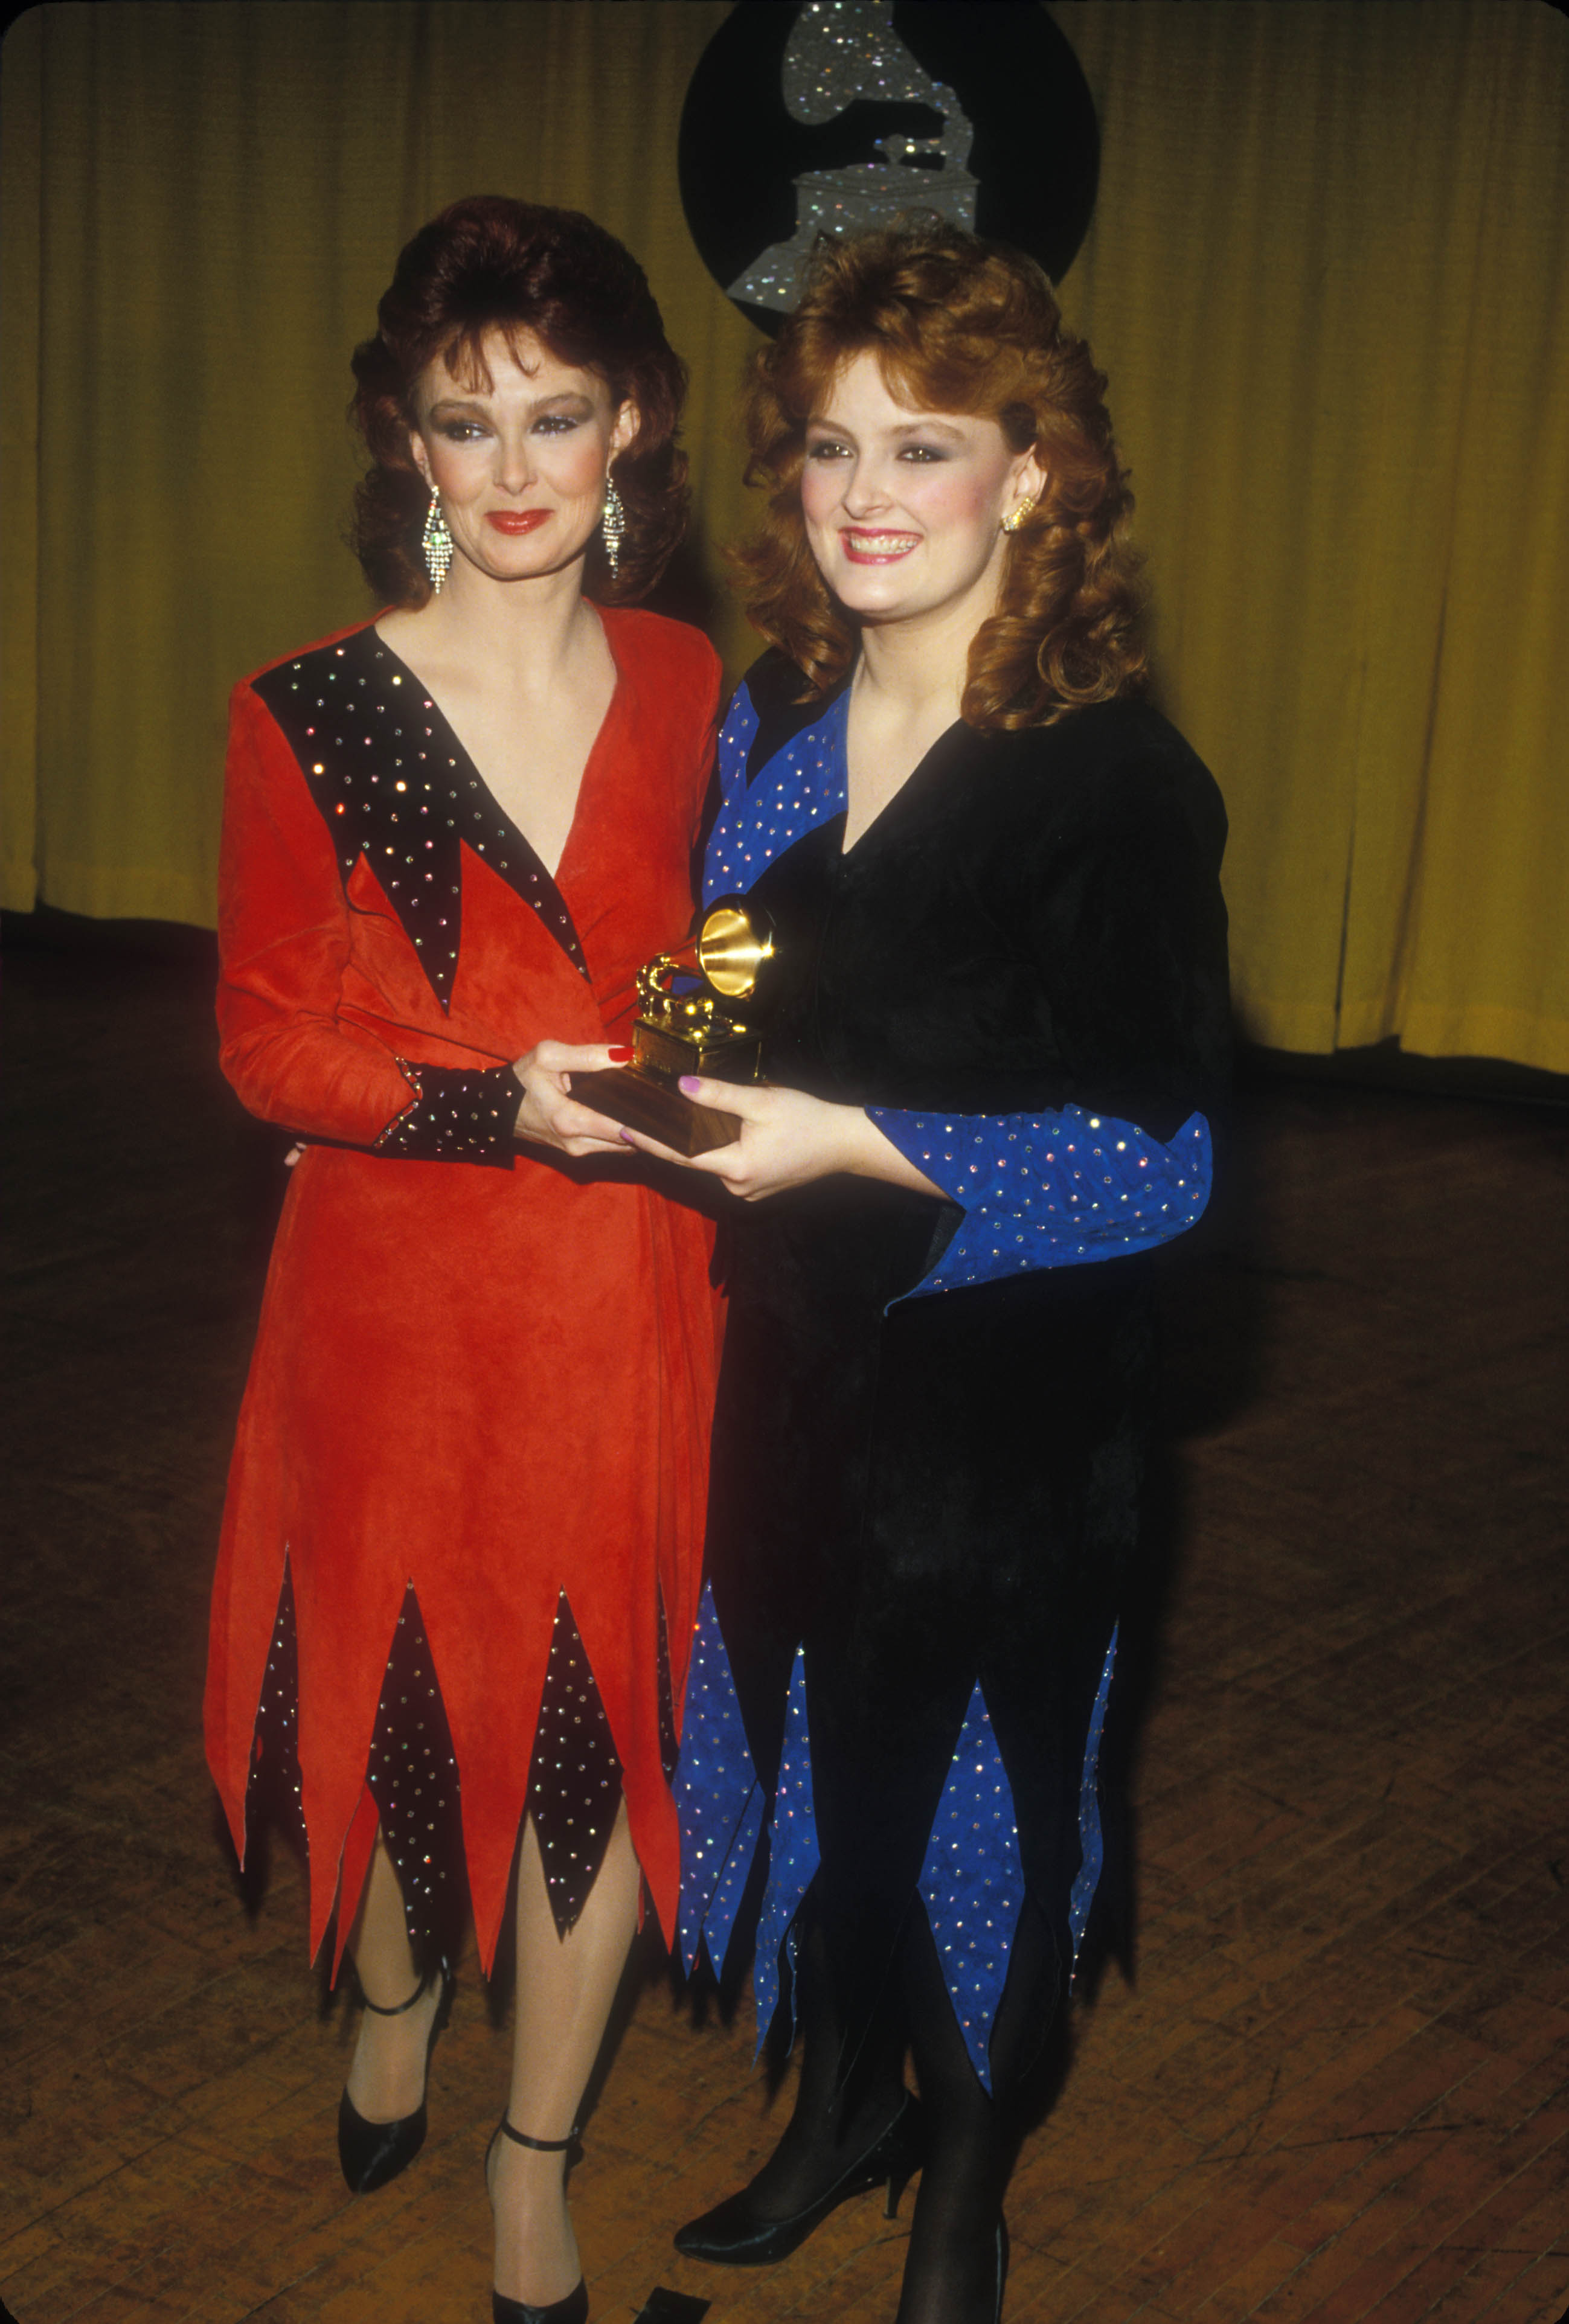 Grammy Awards, 1985